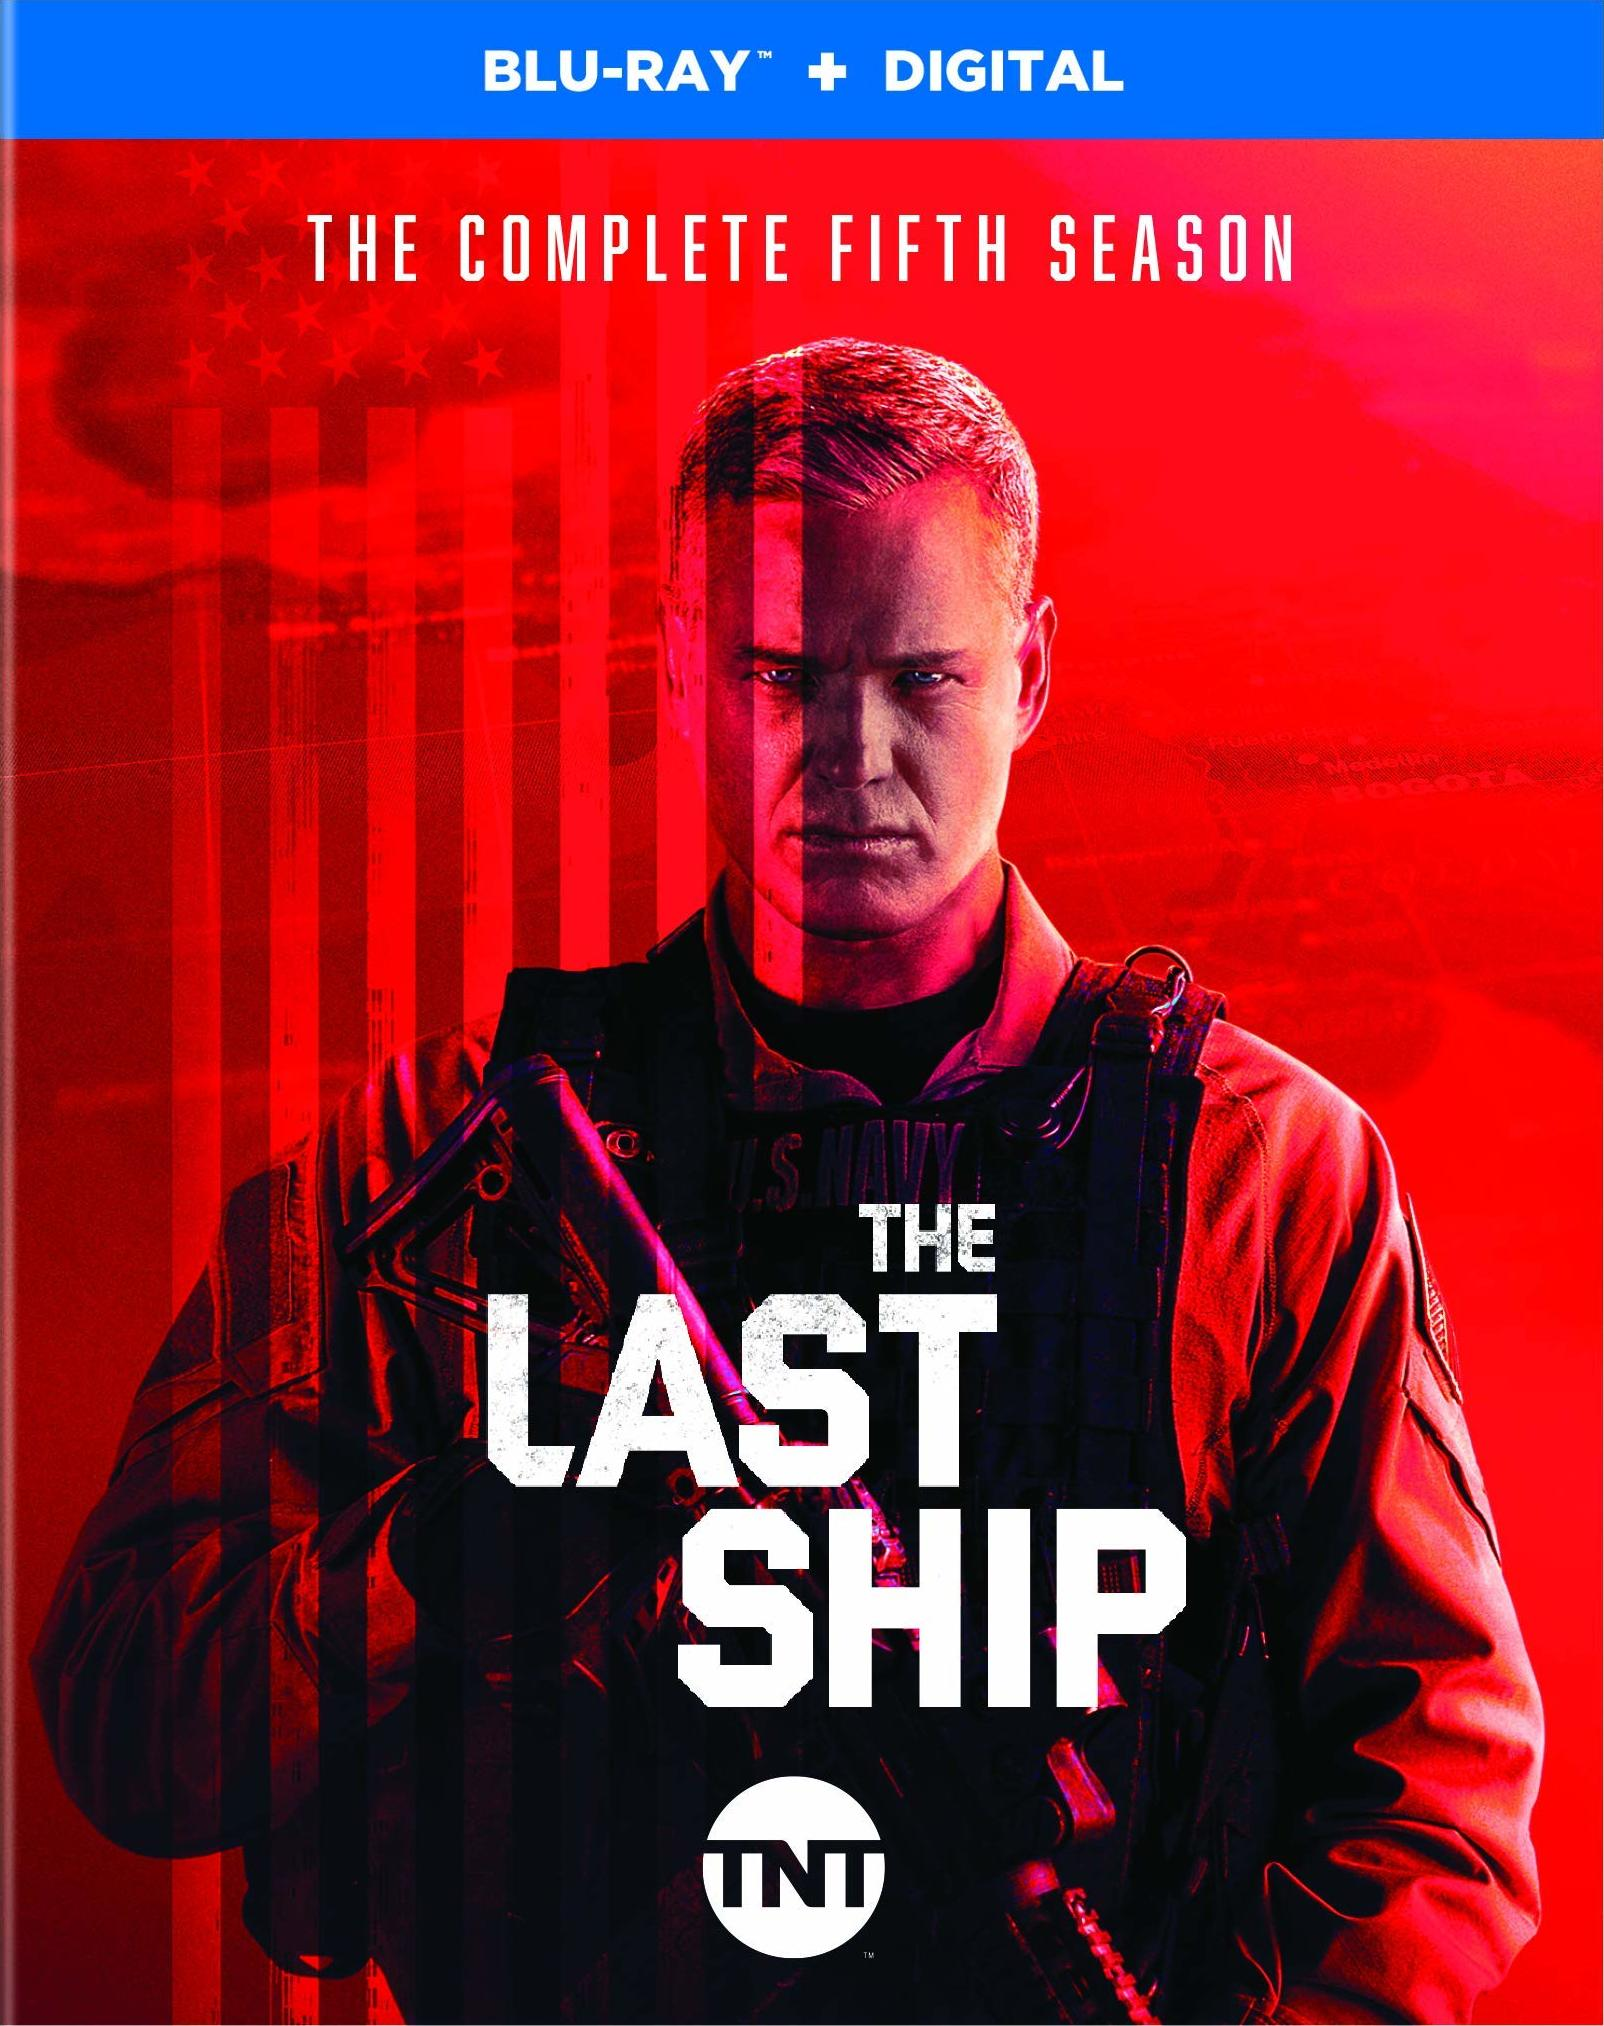 The Last Ship: The Complete Fifth Season (Blu-ray)(Region Free)(Pre-order / Mar 12)